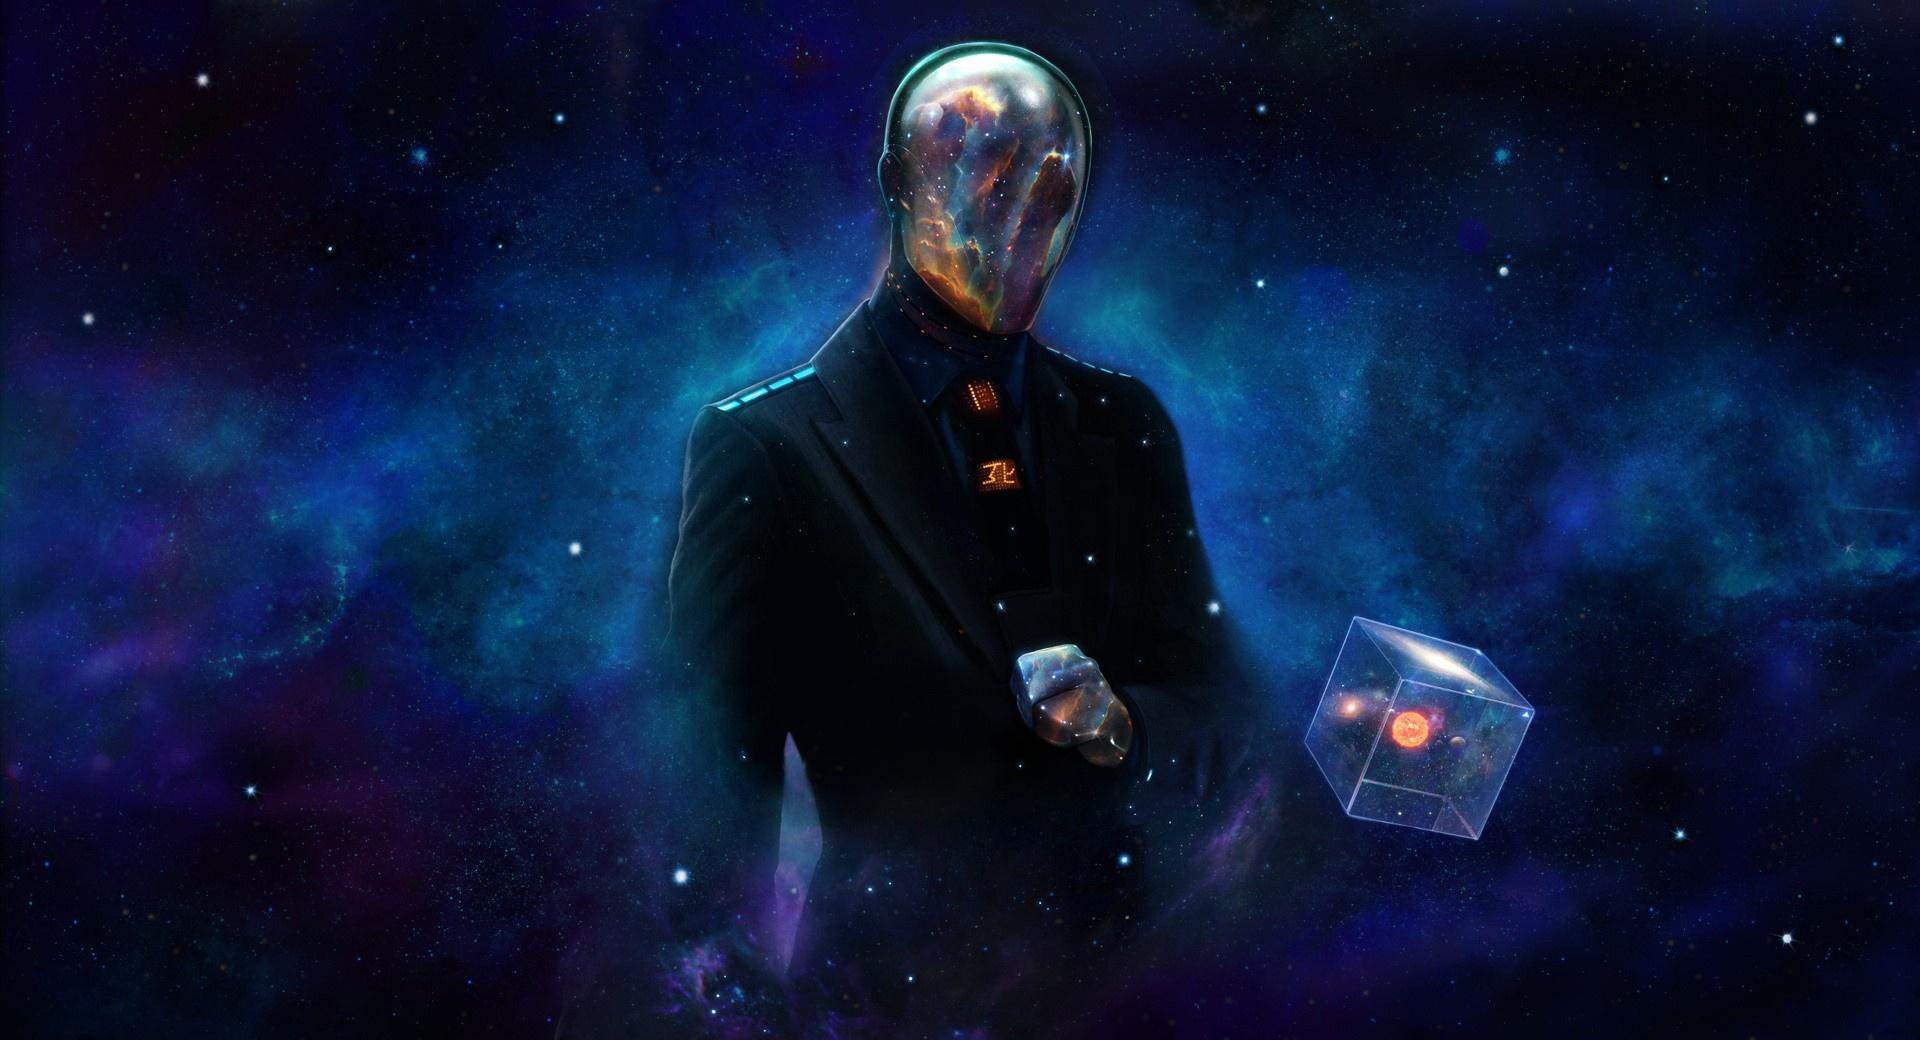 Galaxy Man at 1600 x 1200 size wallpapers HD quality